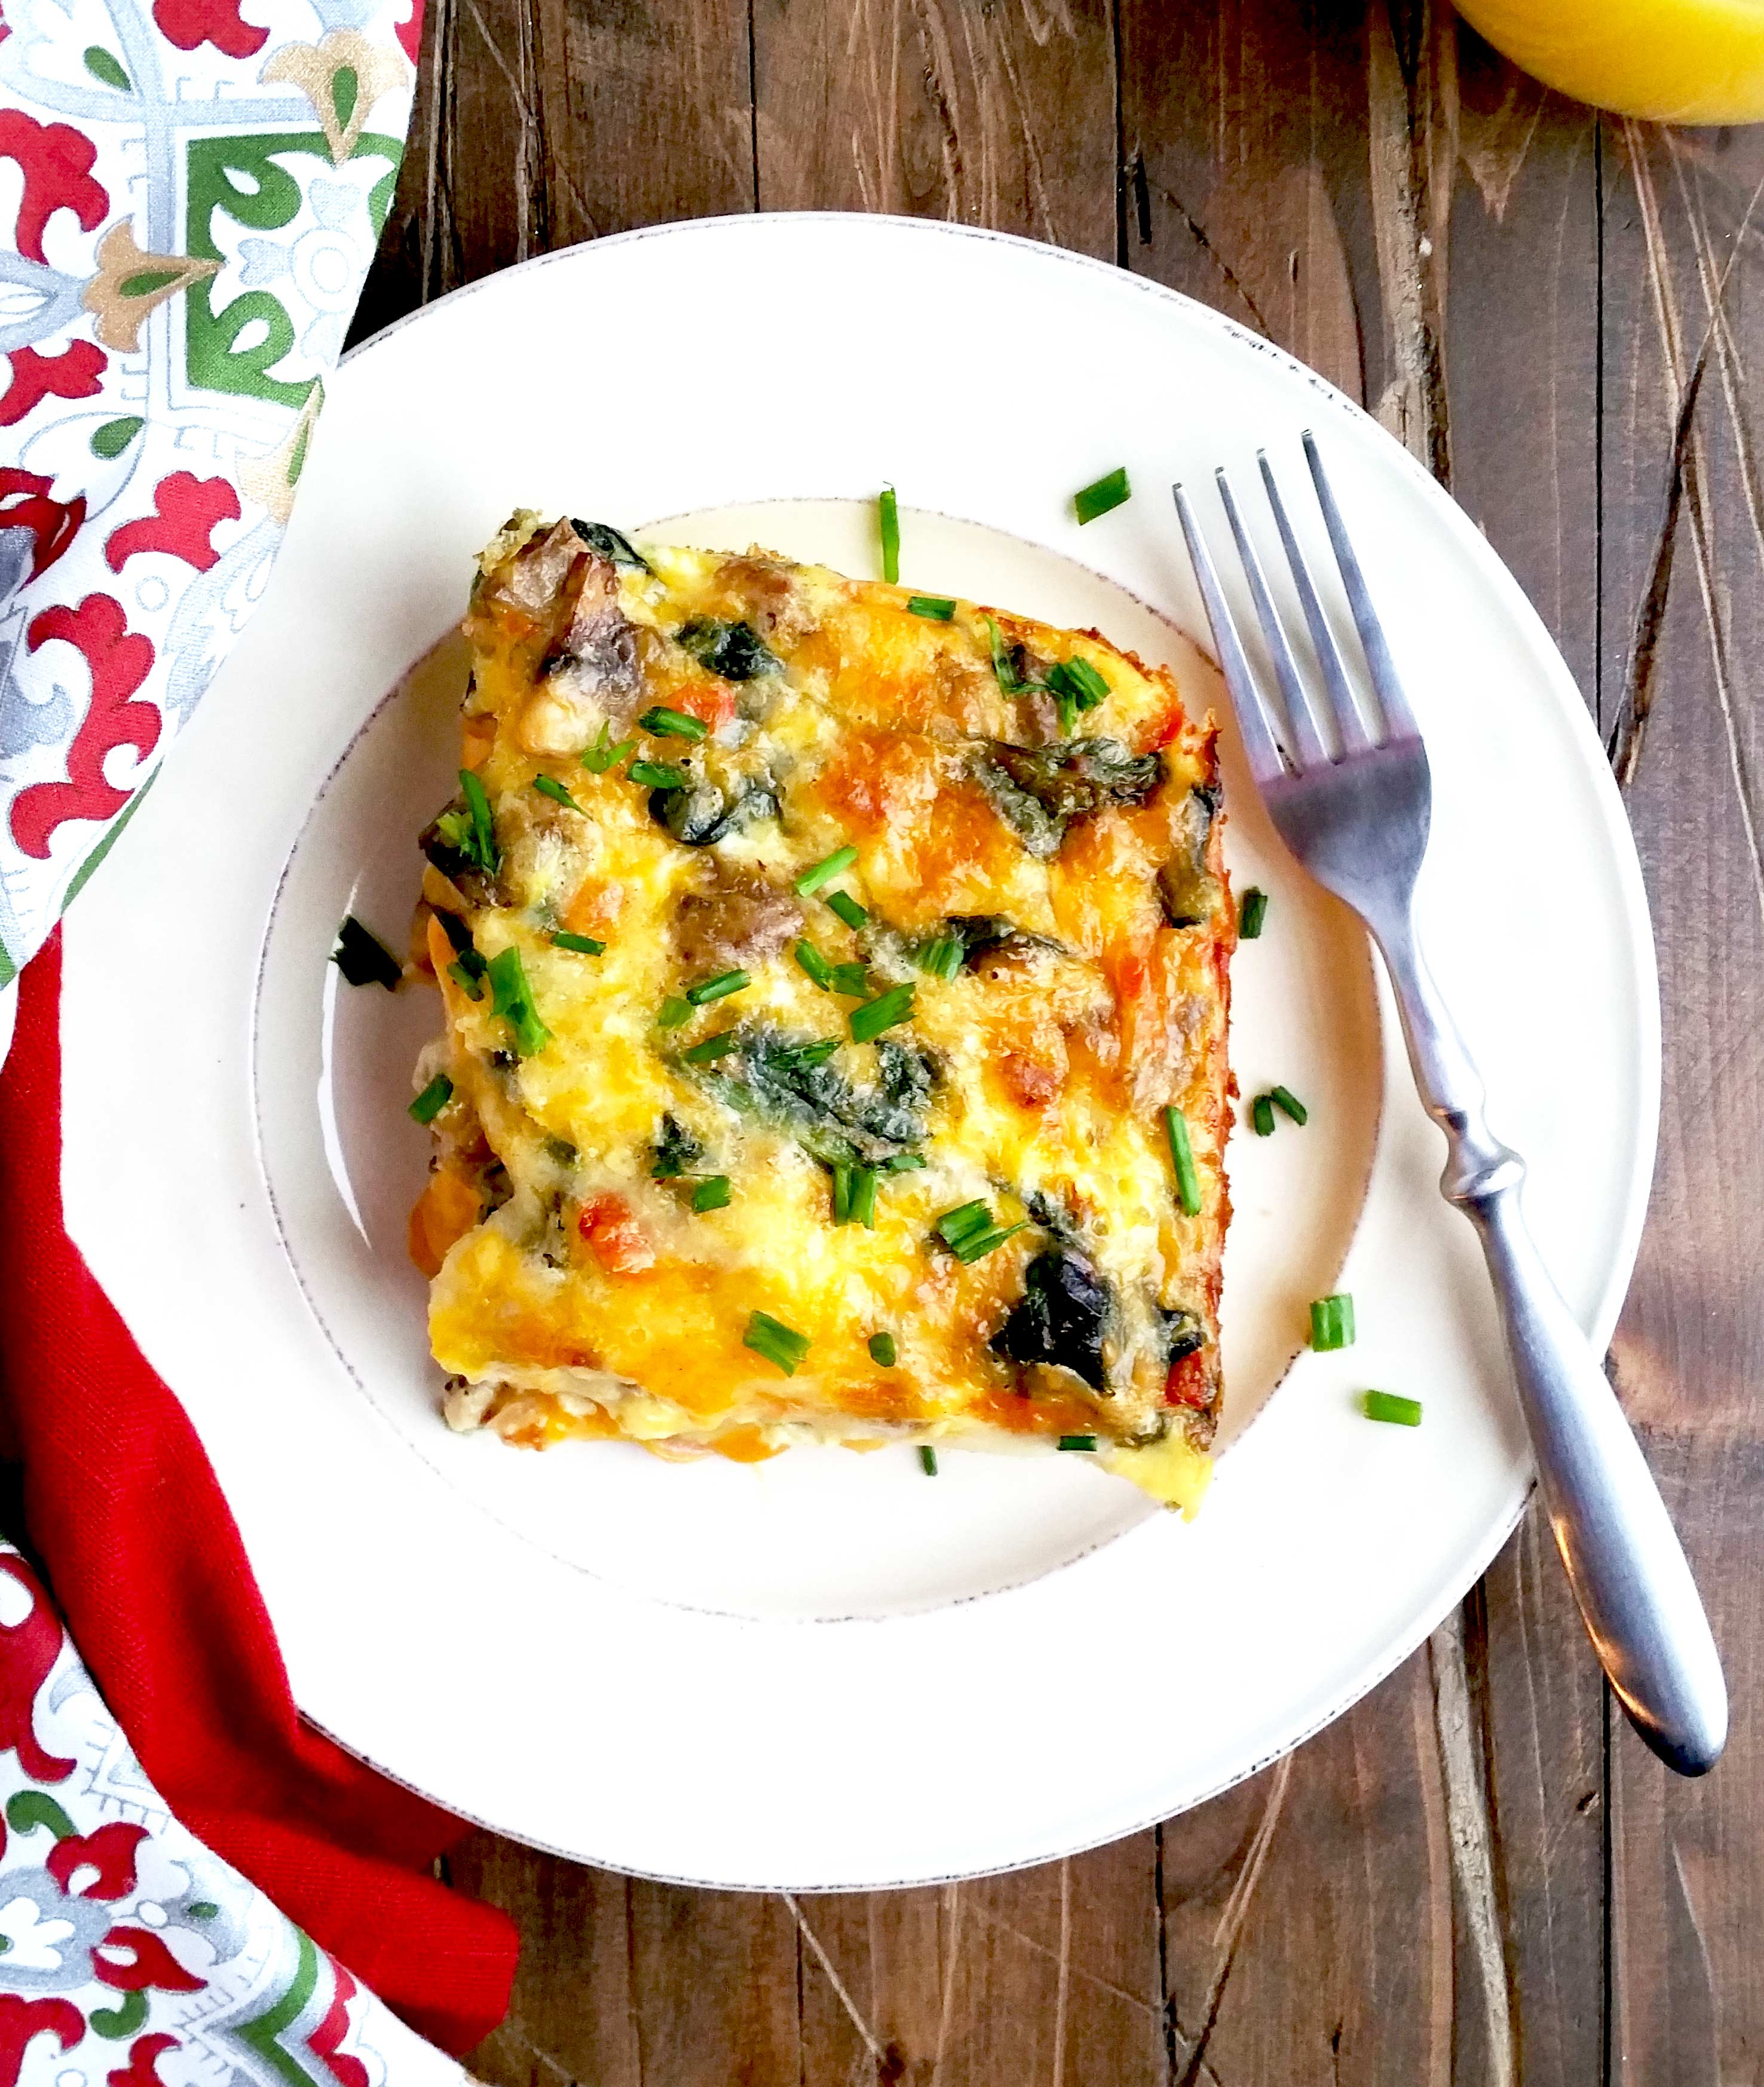 Best-Breakfast-Egg-Casserole